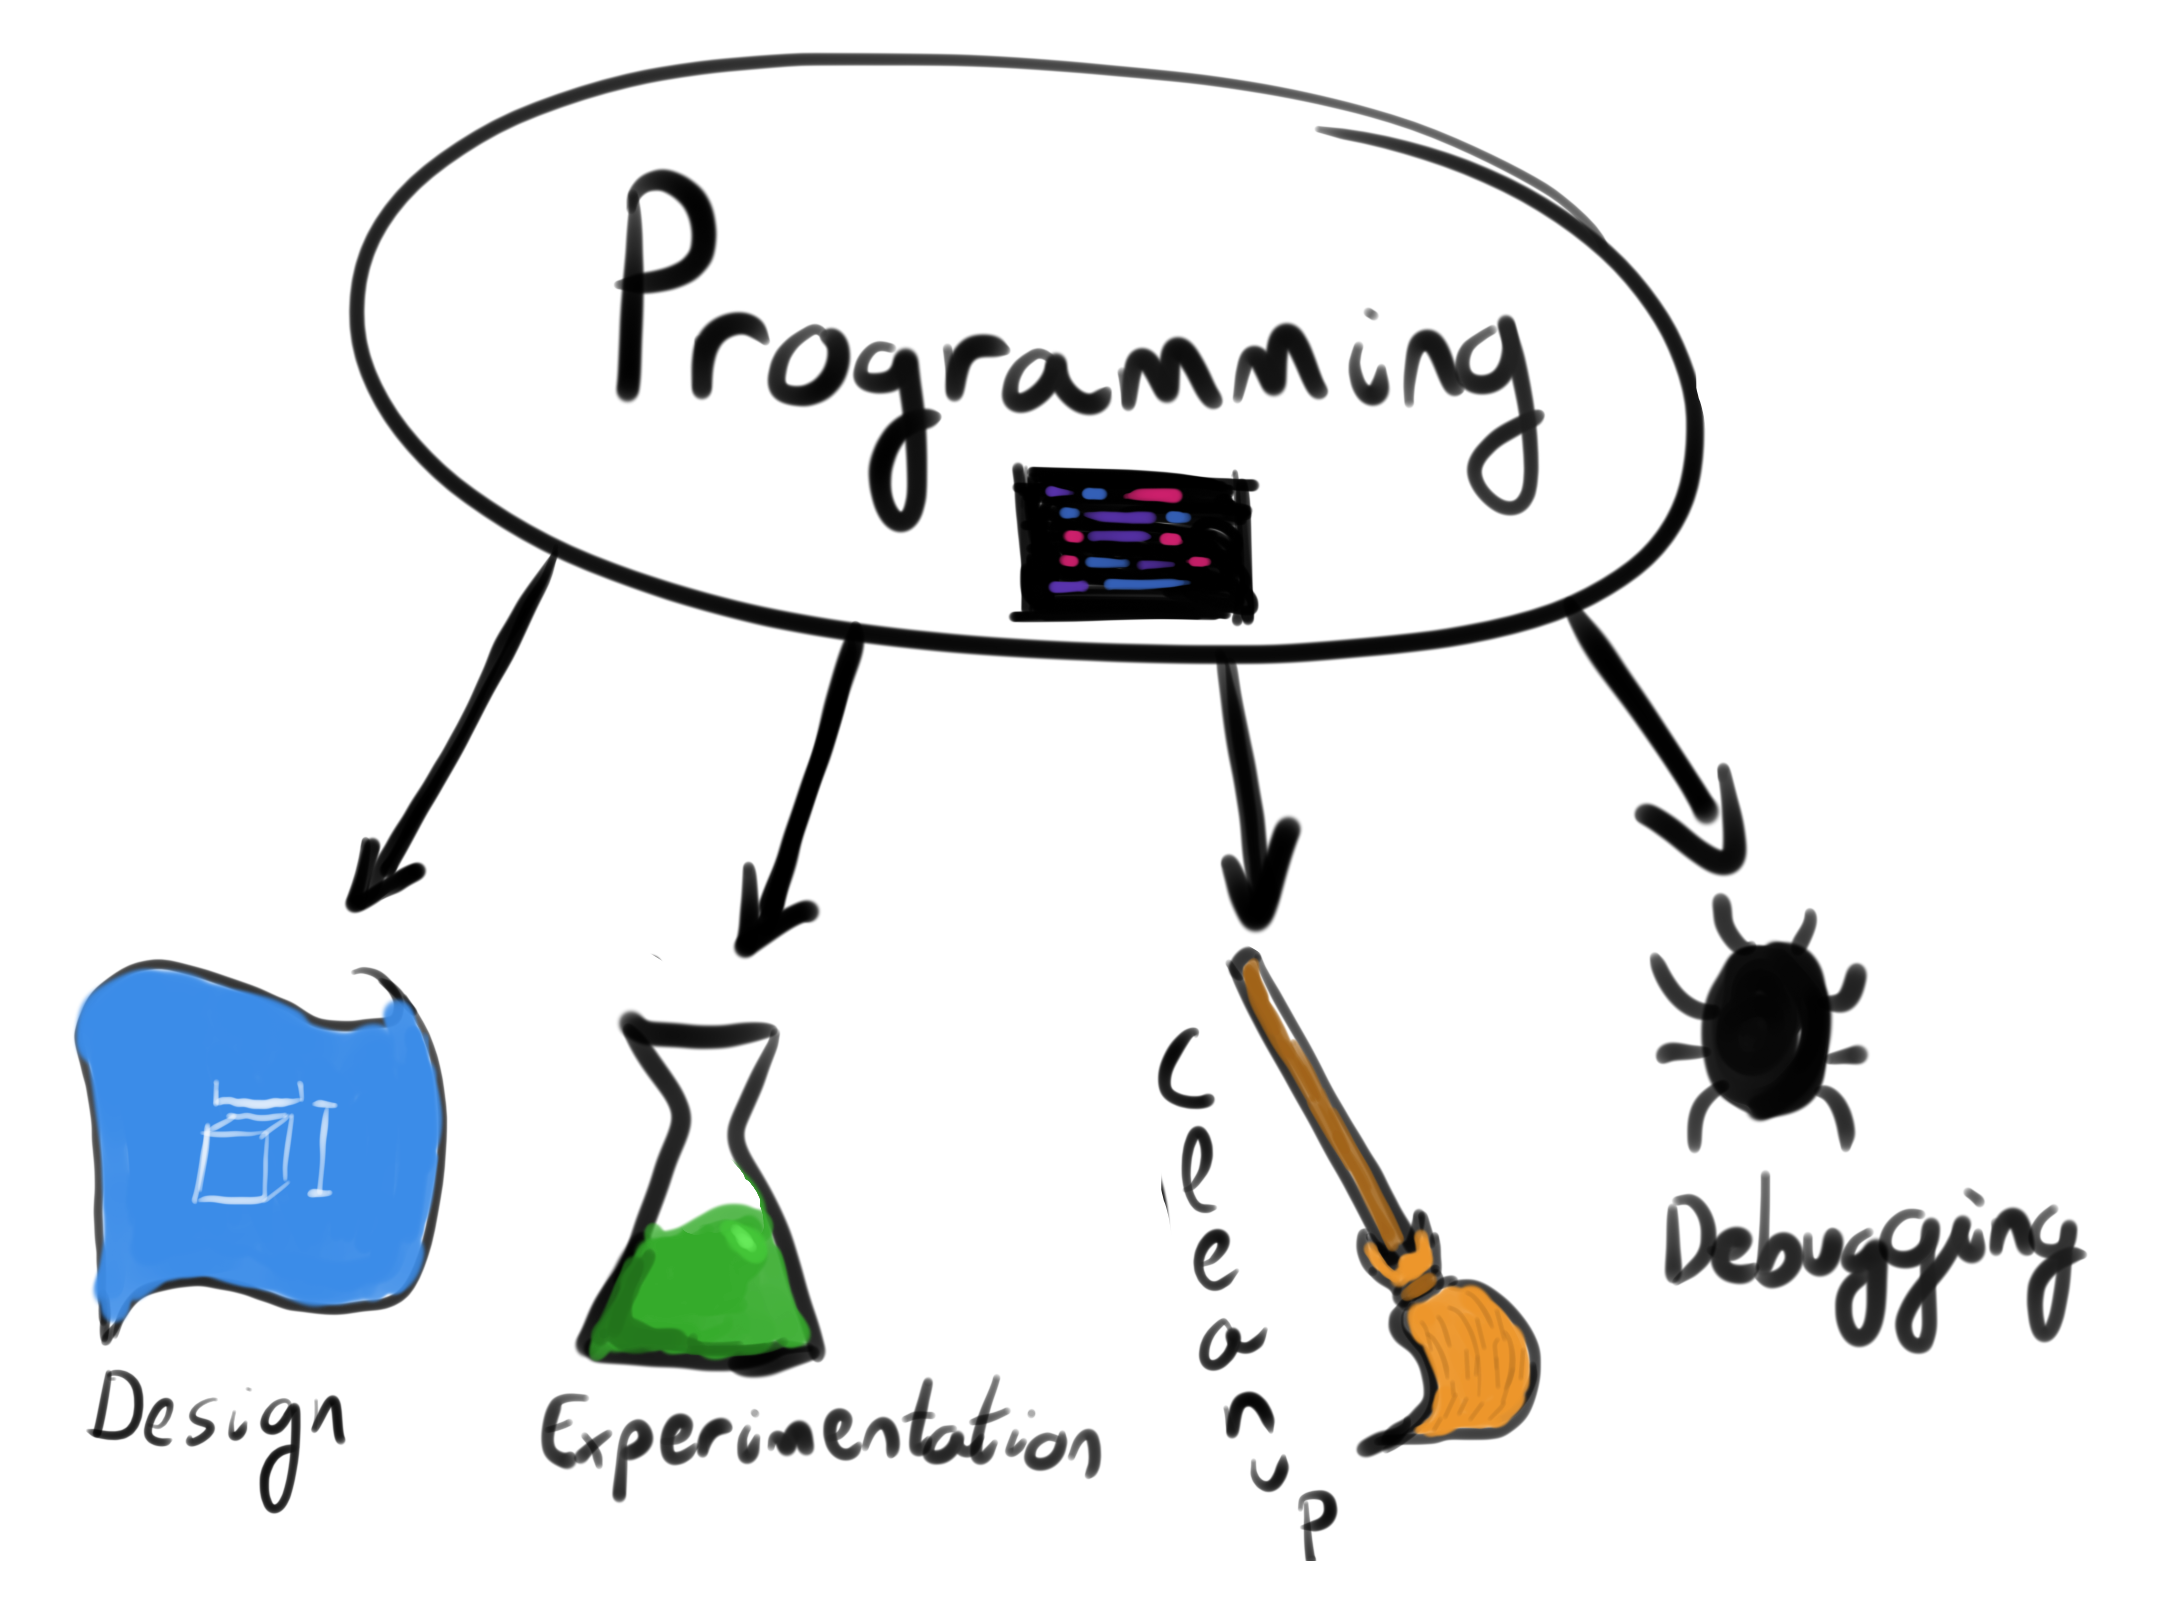 The four core programming tasks